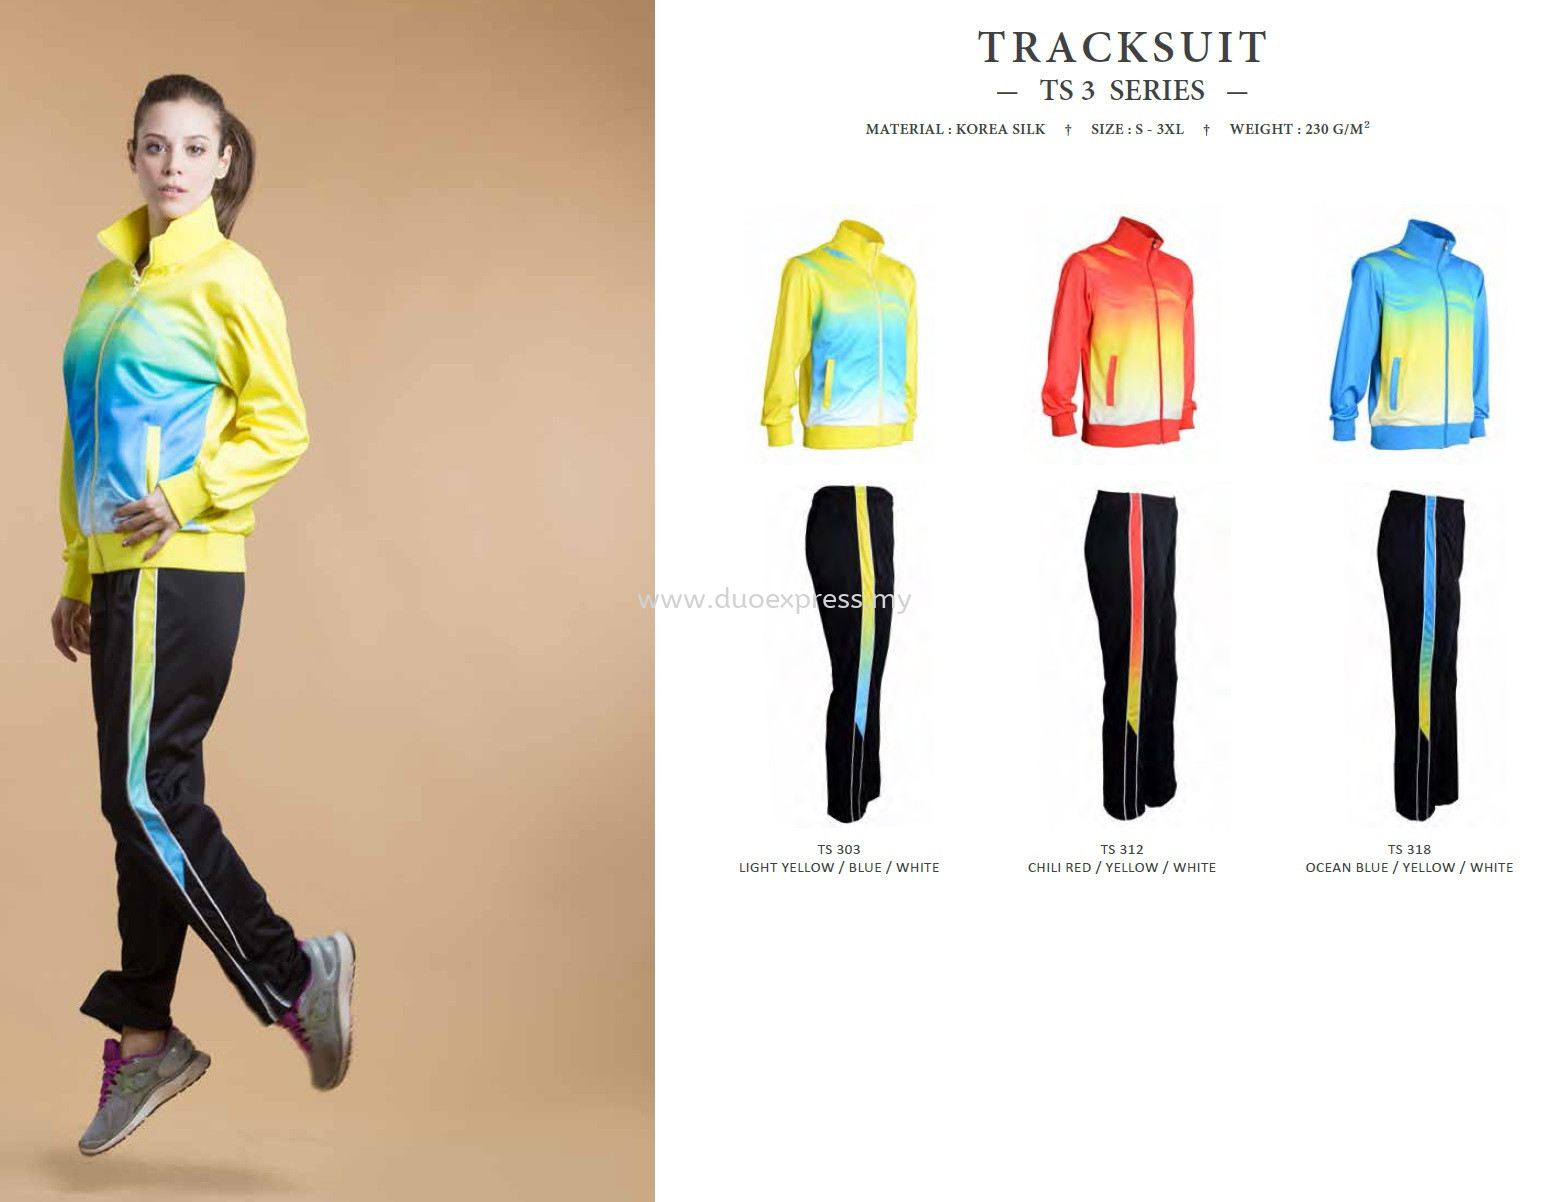 Tracksuit TS3